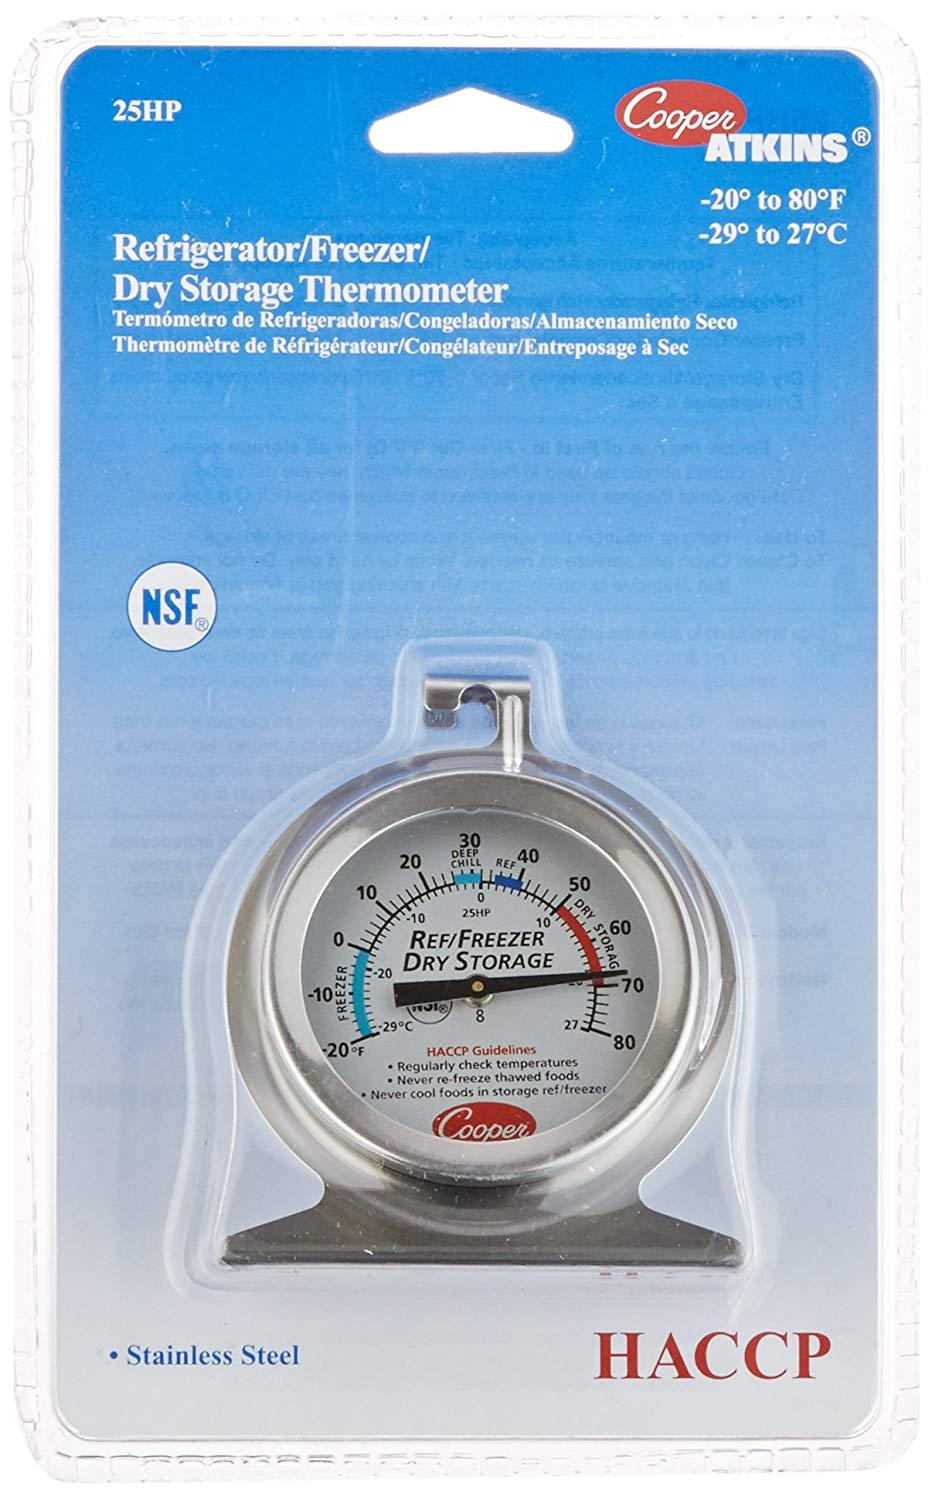 Cooper-Atkins 25hp-01-1 Refrigerator Freezer Dry Storage Thermometer By Galleon.ph.